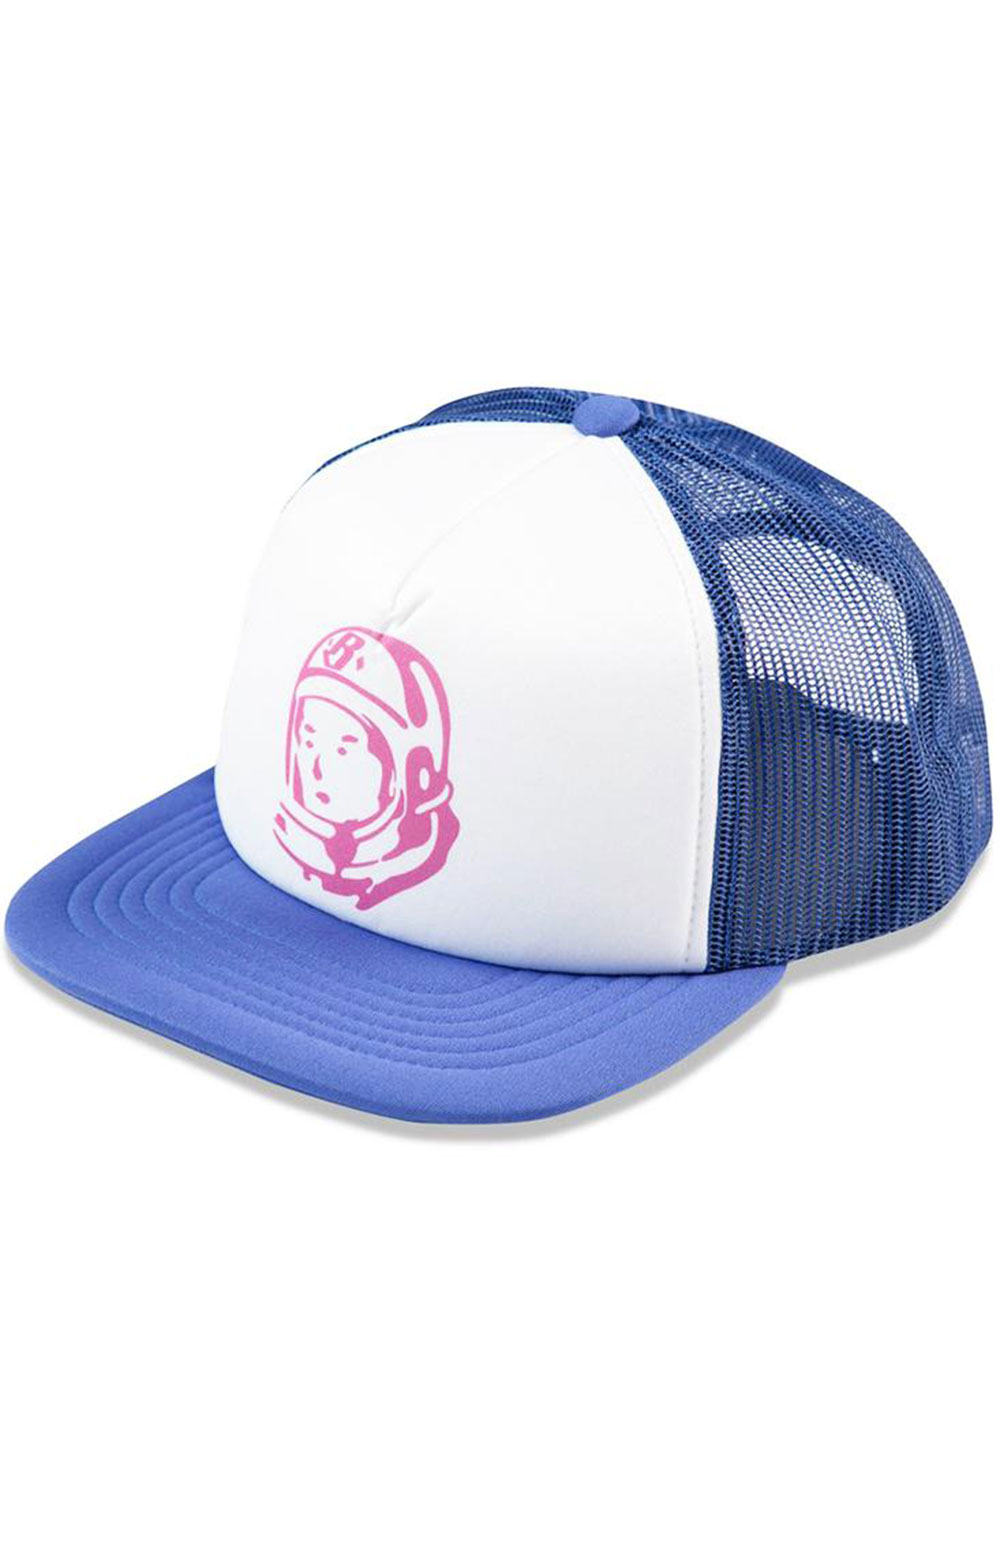 BB Helmet Trucker Hat - Sodalite Blue